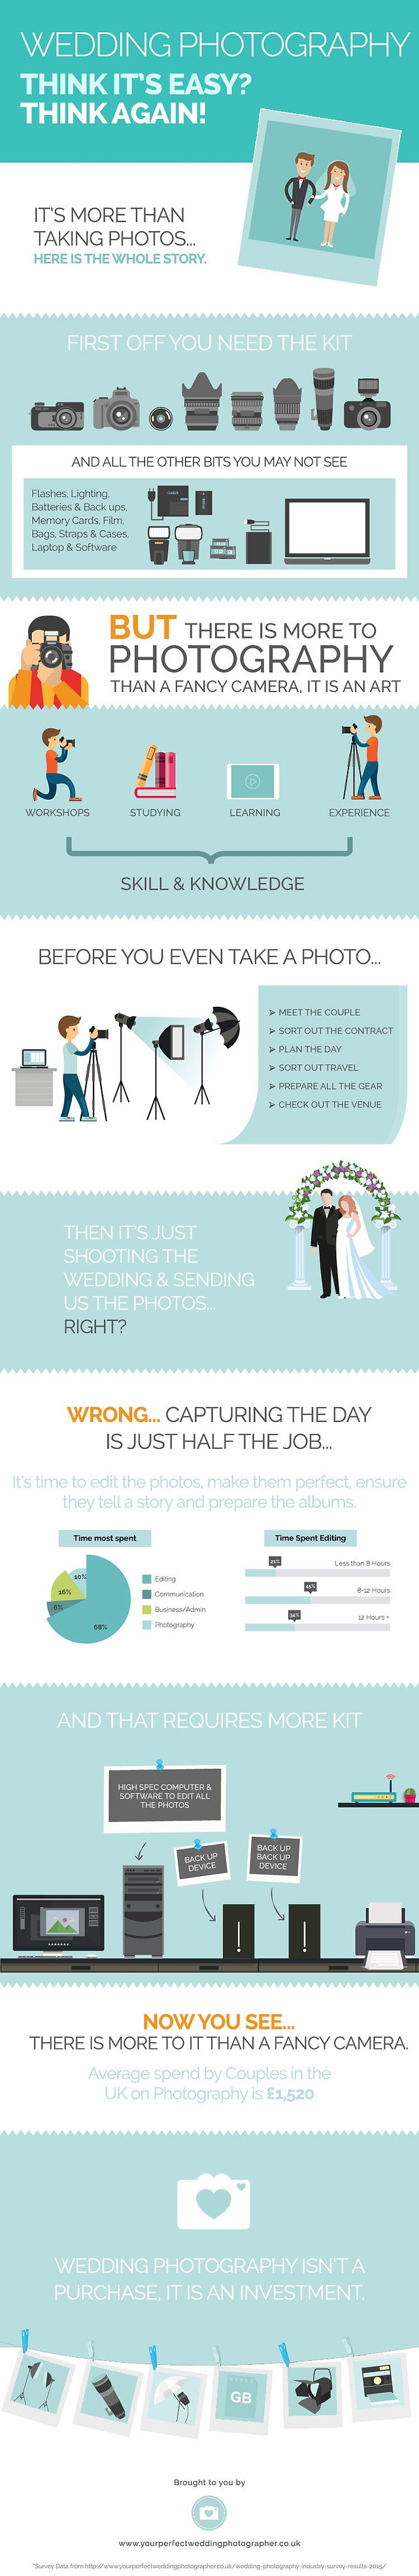 Wedding-Photography-Infographic.jpg